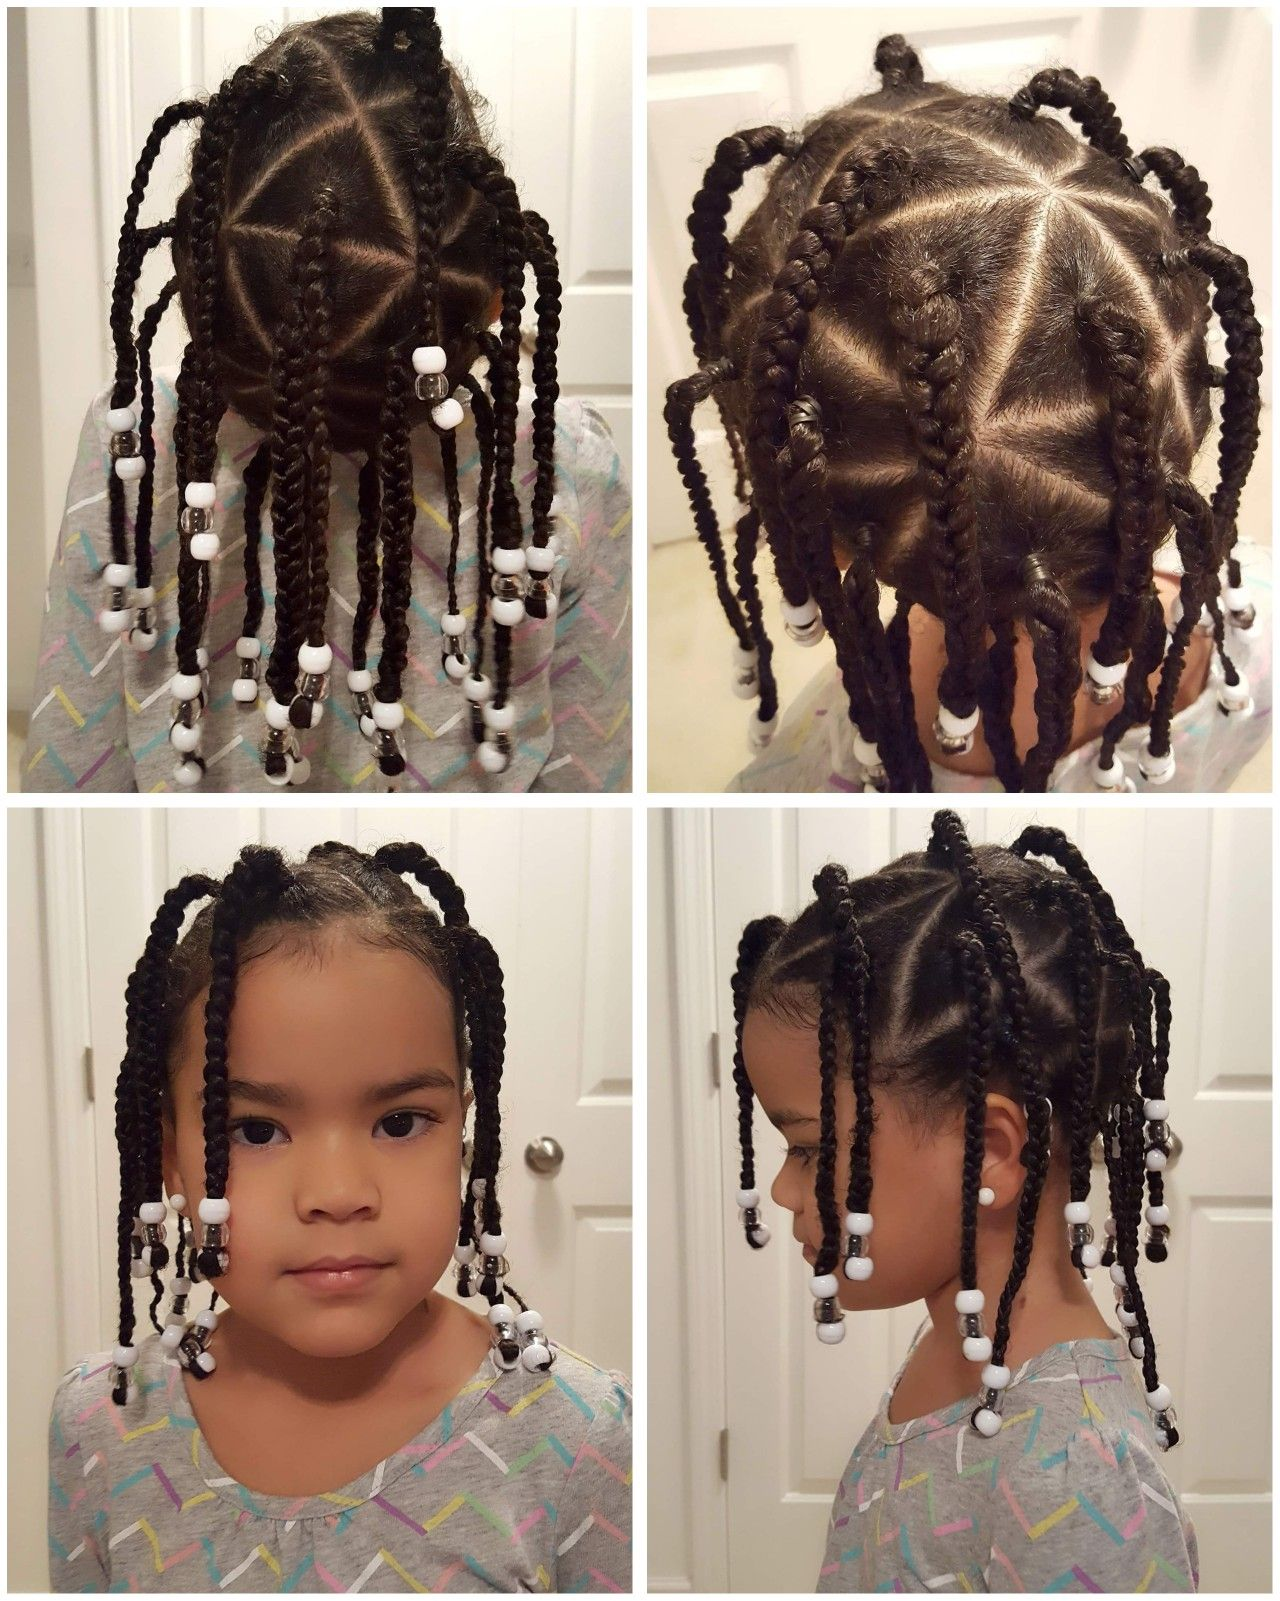 Triangle Braids With Beads On Biracial Girl Mixed Girl Hairstyles Hair Styles Mixed Kids Hairstyles Mixed Girl Hairstyles